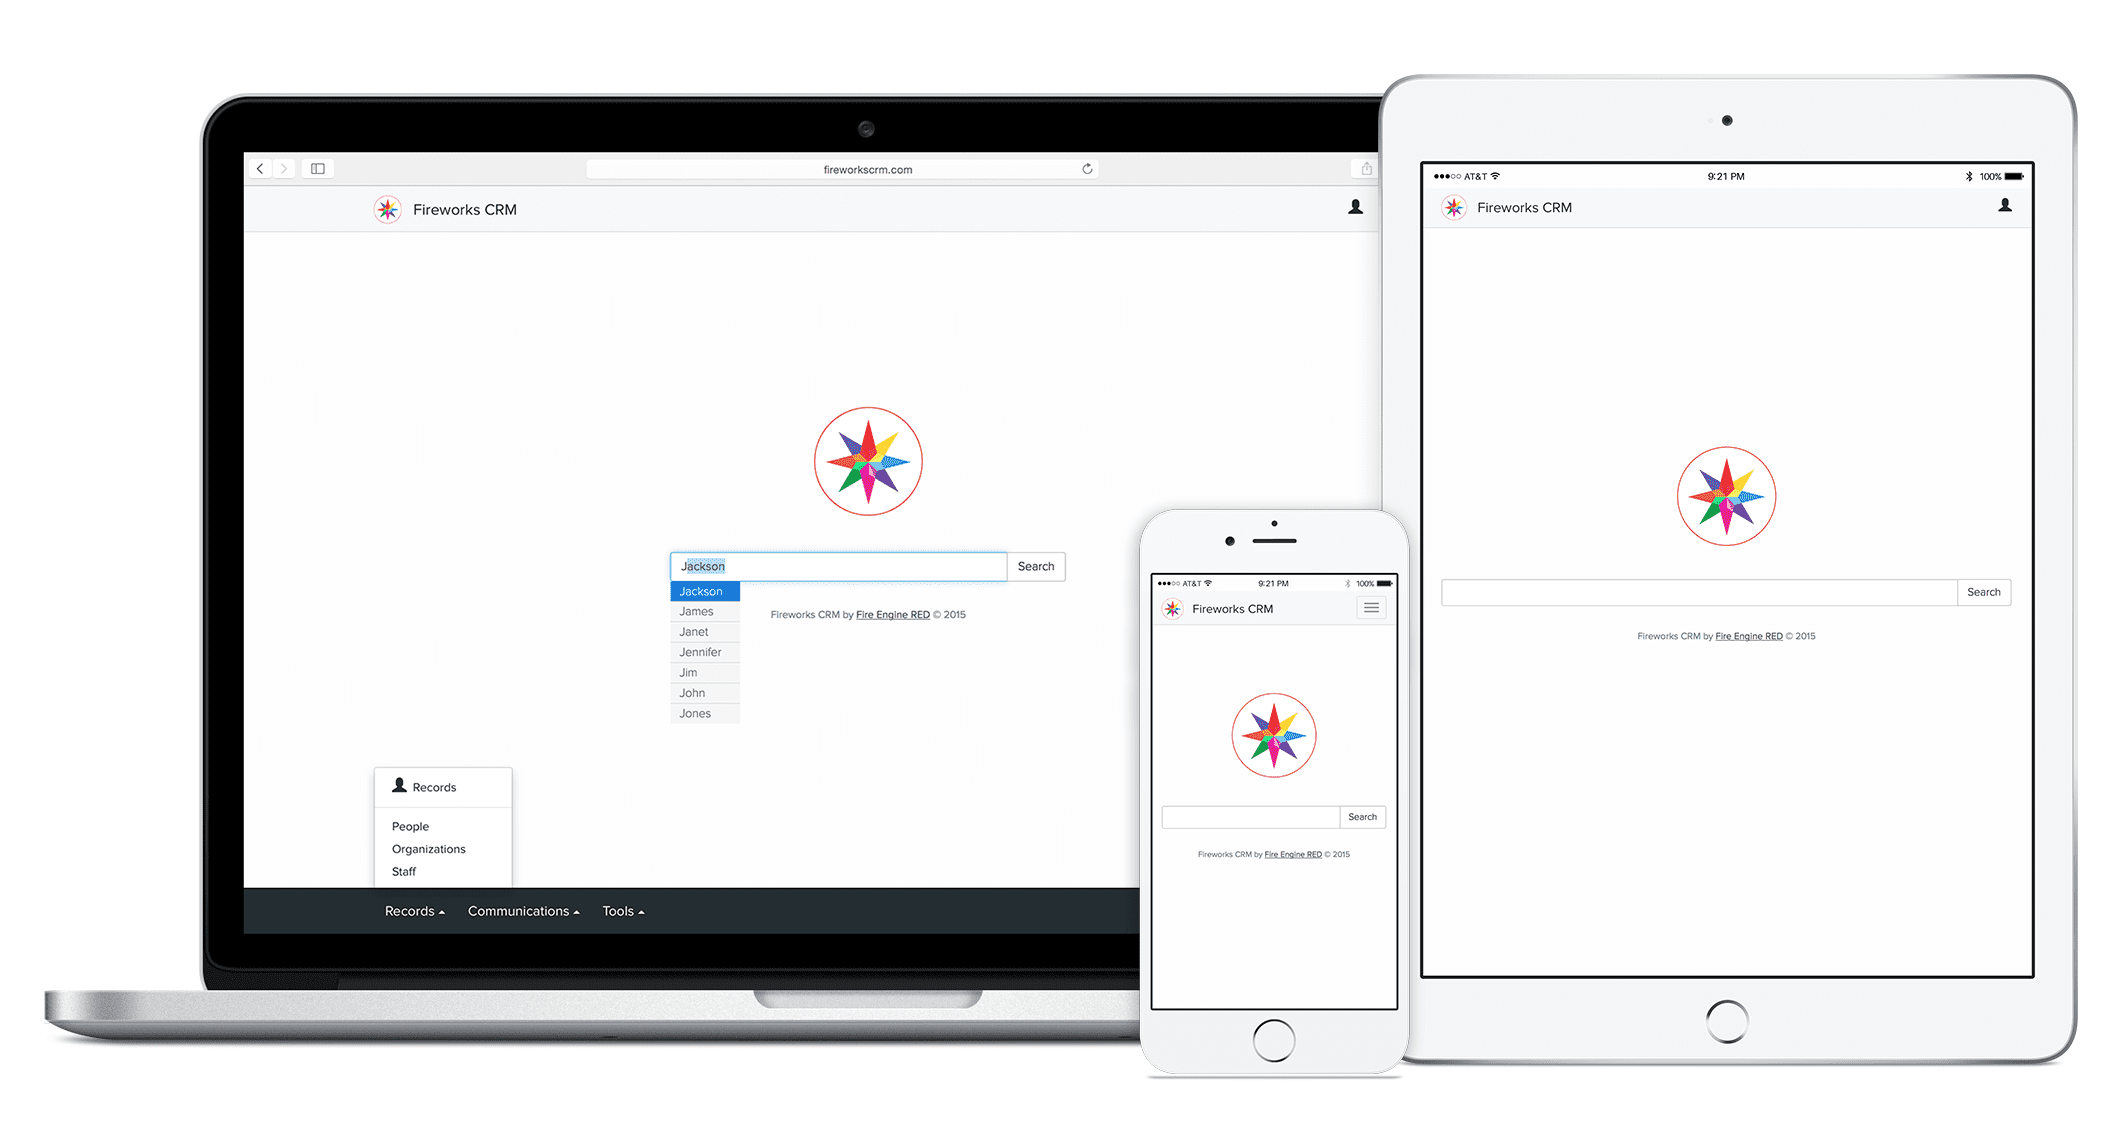 Fireworks™ is the first CRM built specifically for admissions that provides users with a consumer-software-like experience. It's simple, easy to use, and built for mobile using responsive design.